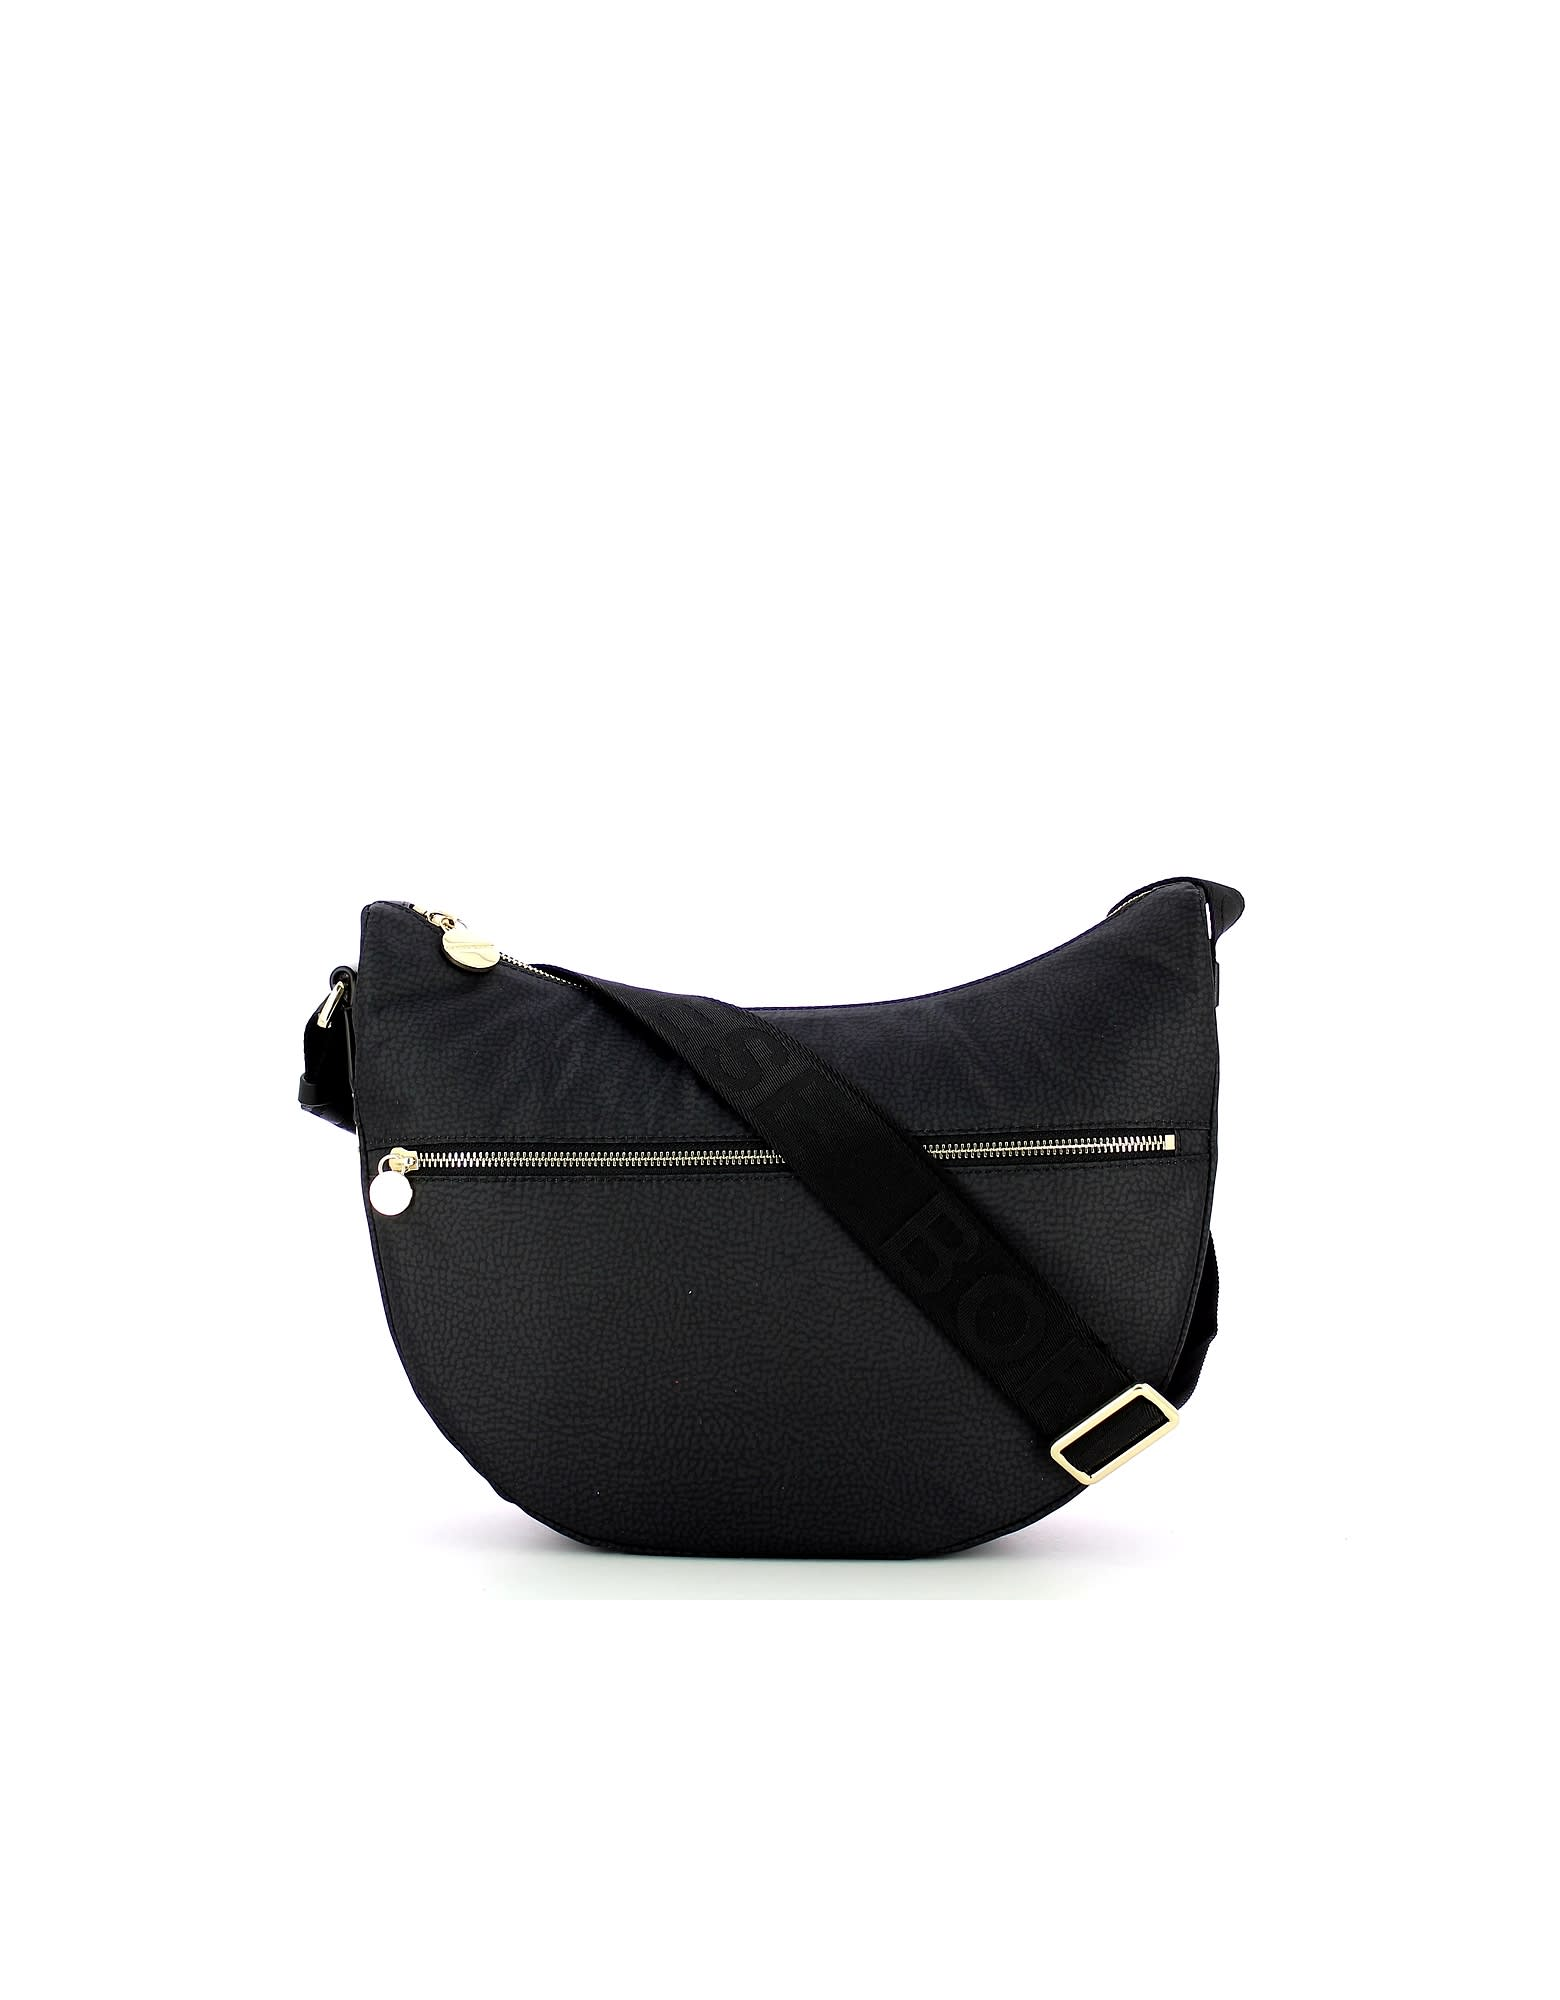 Borbonese BLACK MIDDLE HALF-MOON SHOULDER BAG